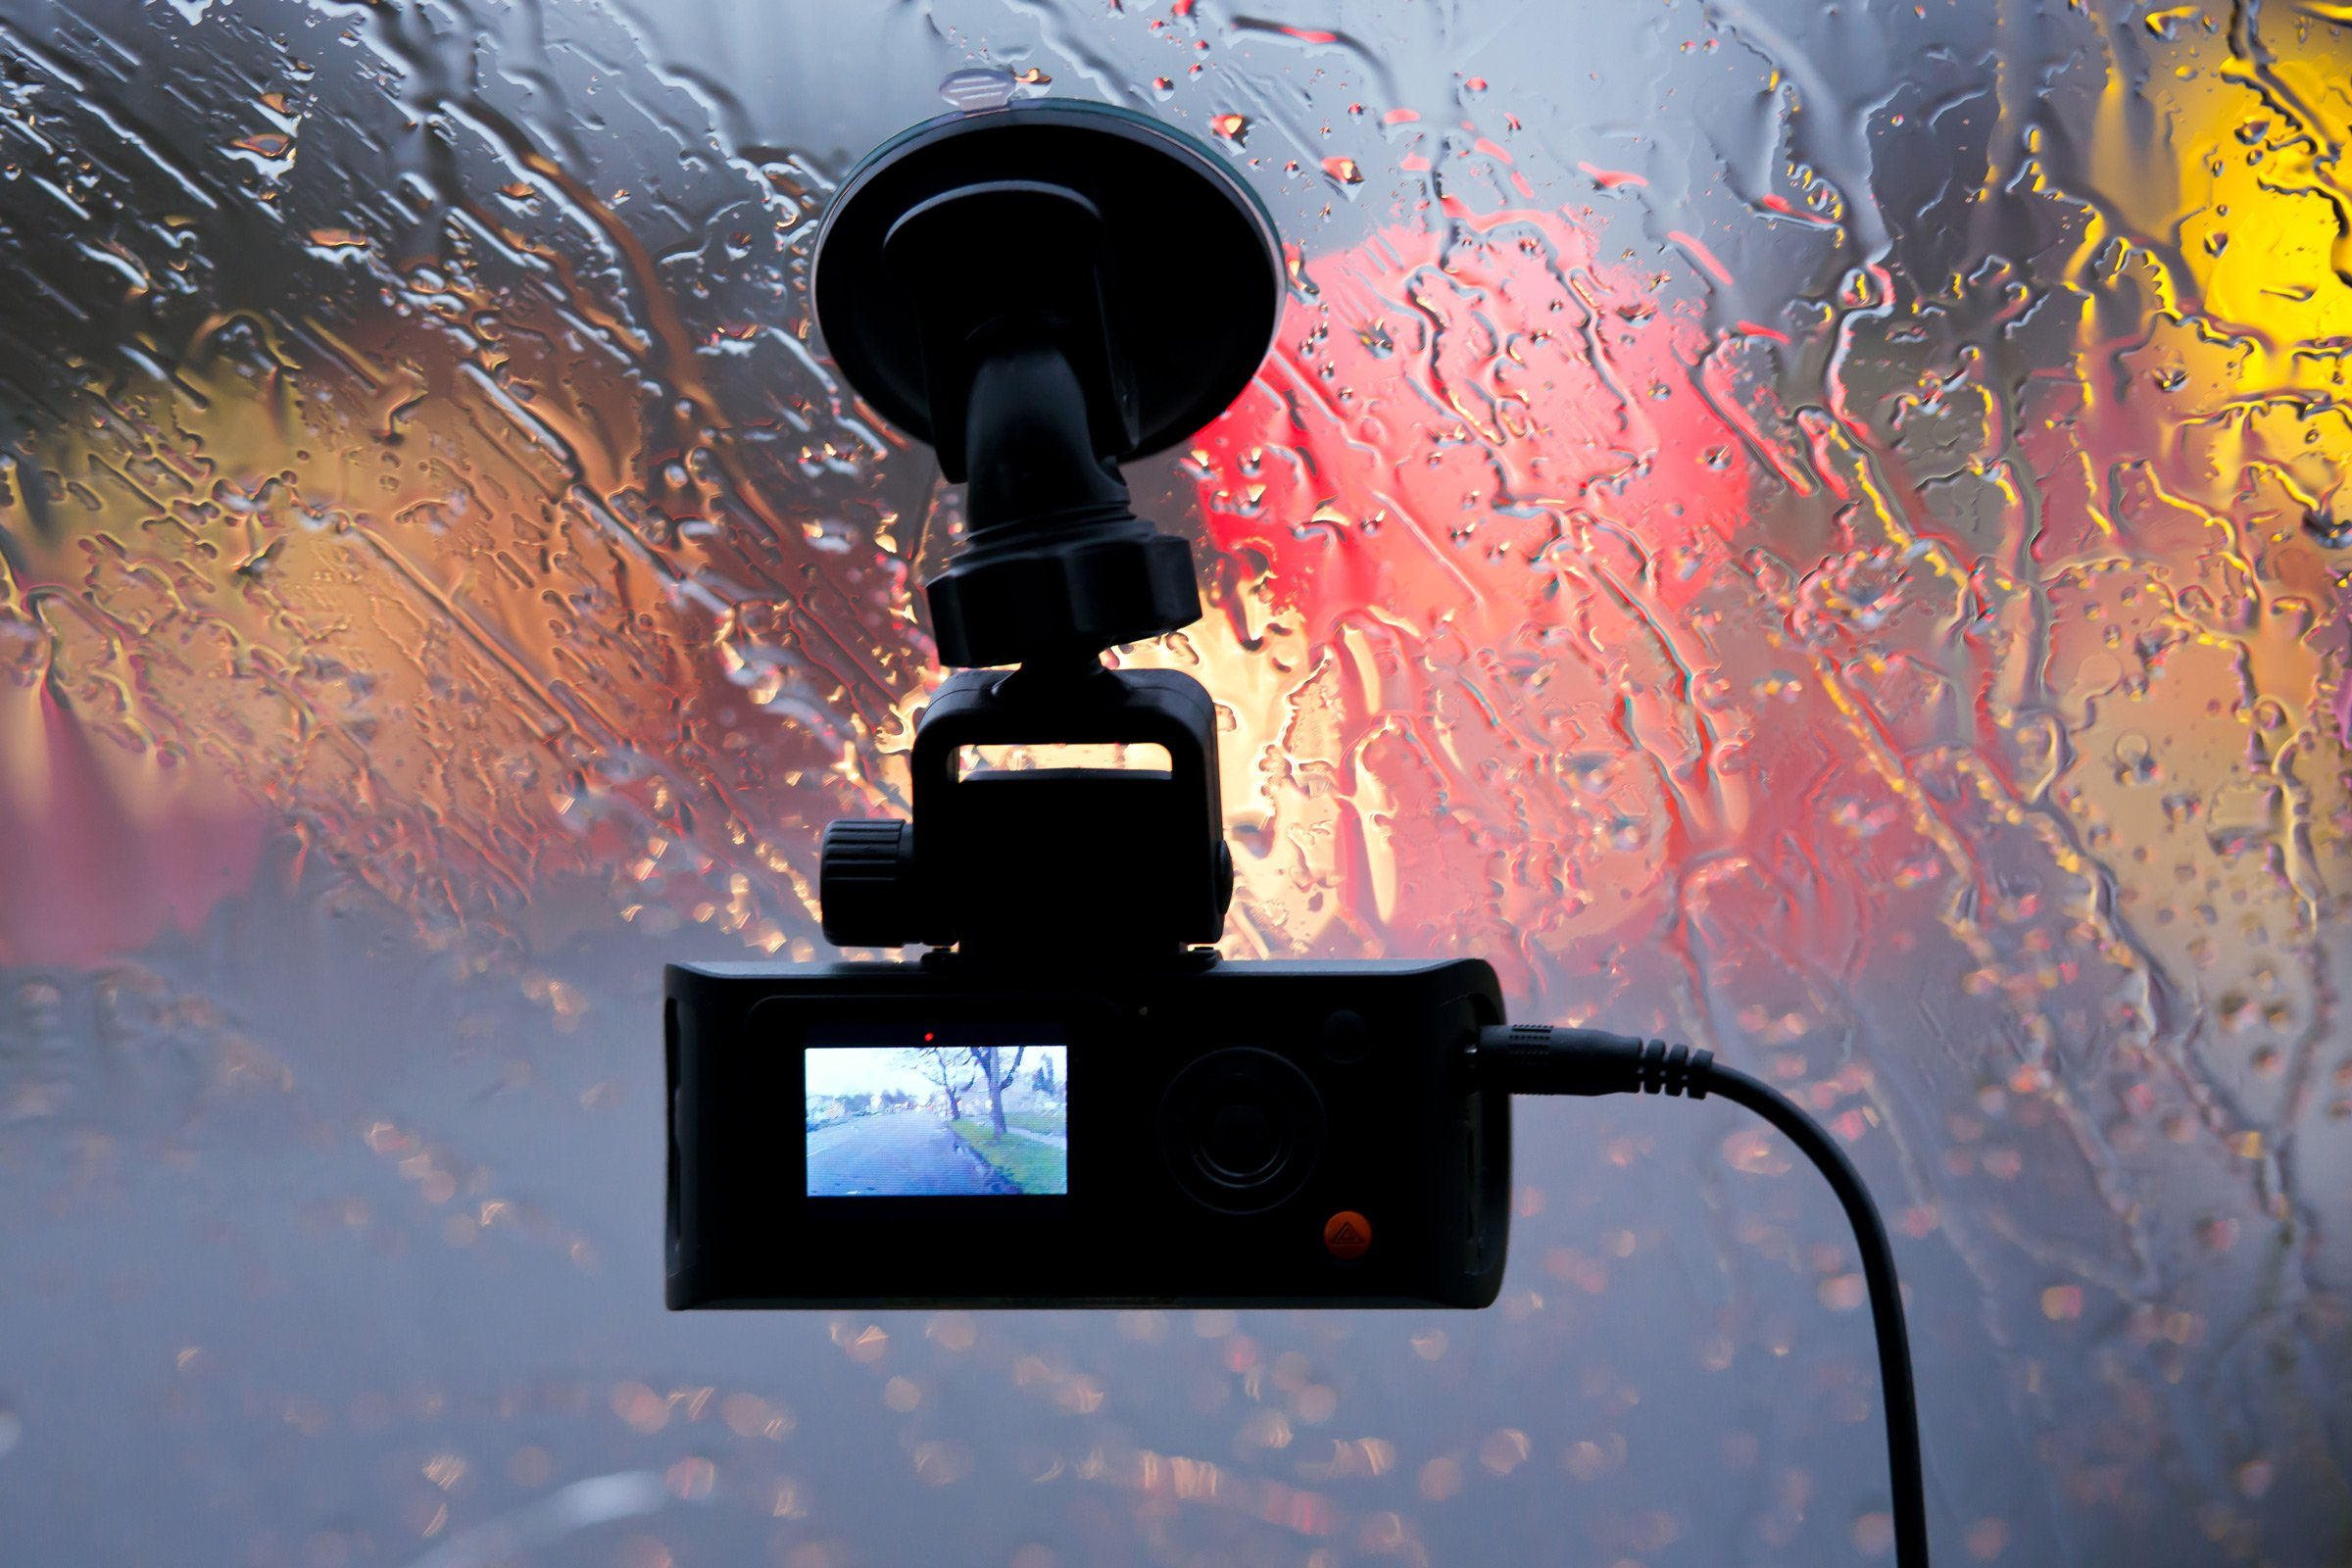 Vehicle dvr on glass of car in rain